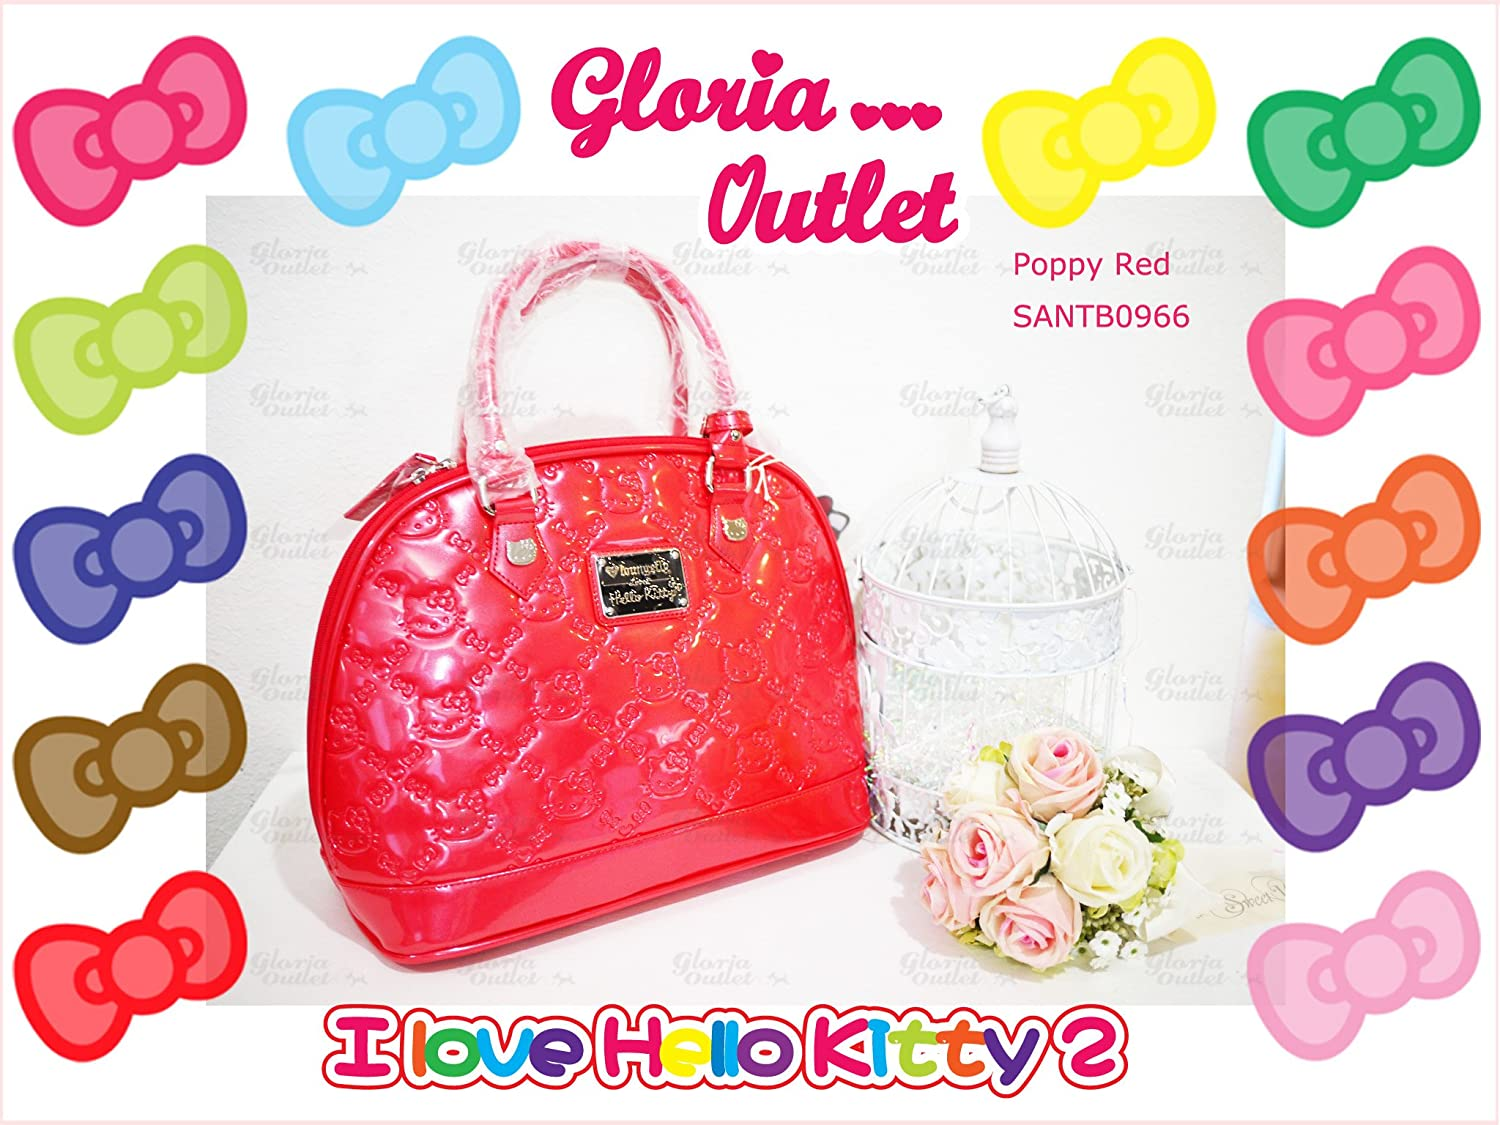 2bcea4a1b62e Amazon.com   Hello Kitty poppy Red Embossed Patent Bag SANTB966 Loungefly    Beauty